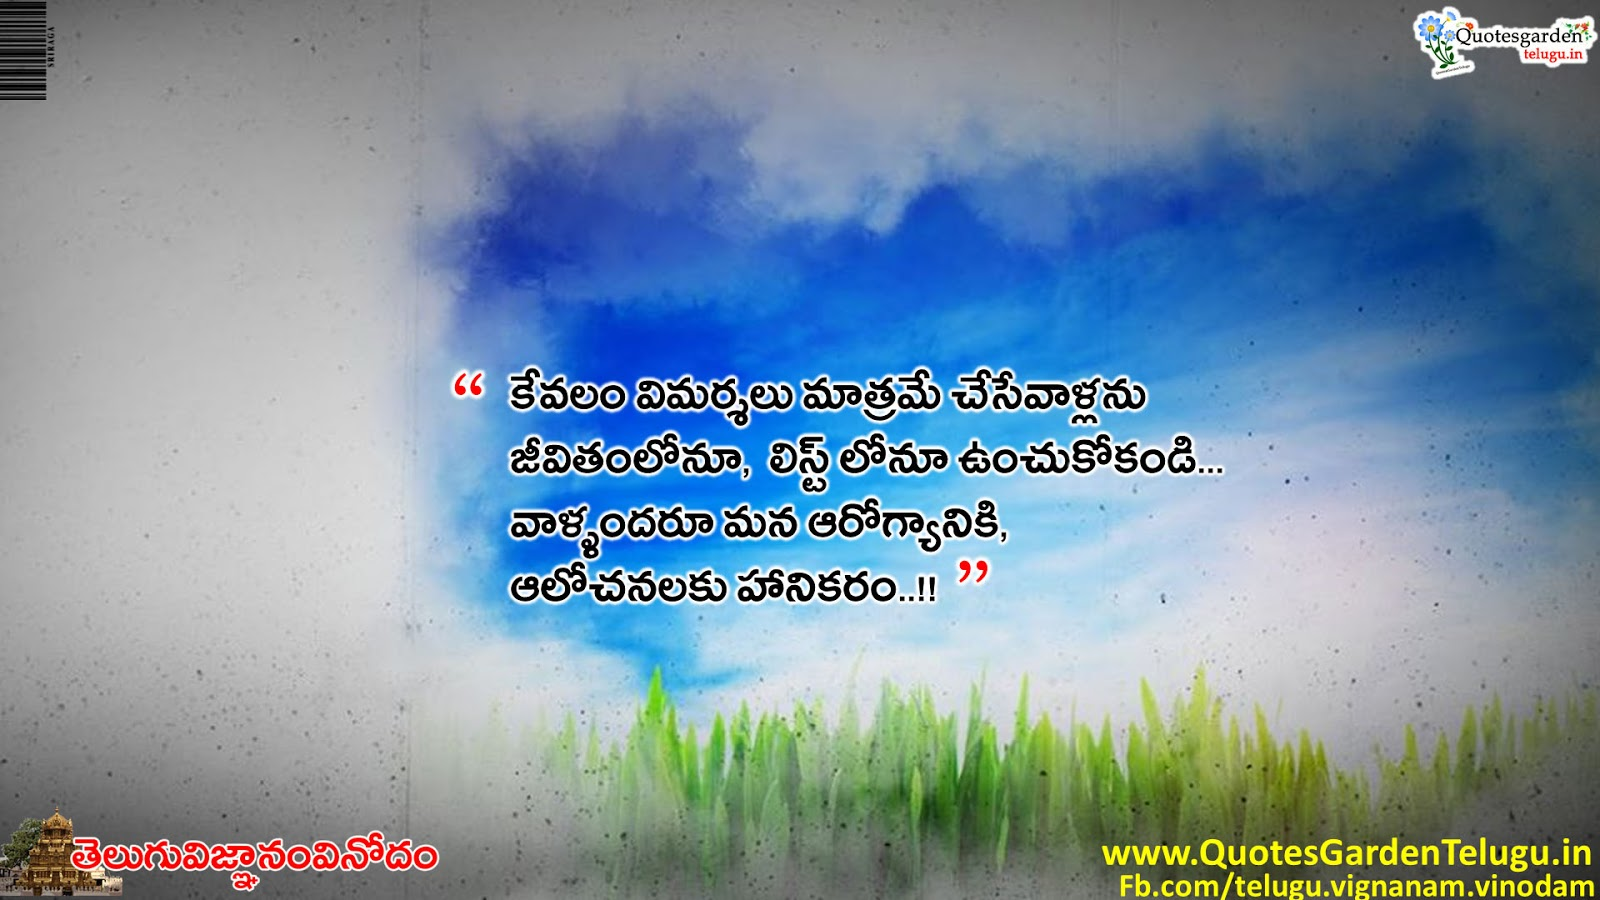 Real life quotes in telugu  QUOTES GARDEN TELUGU  Telugu Quotes